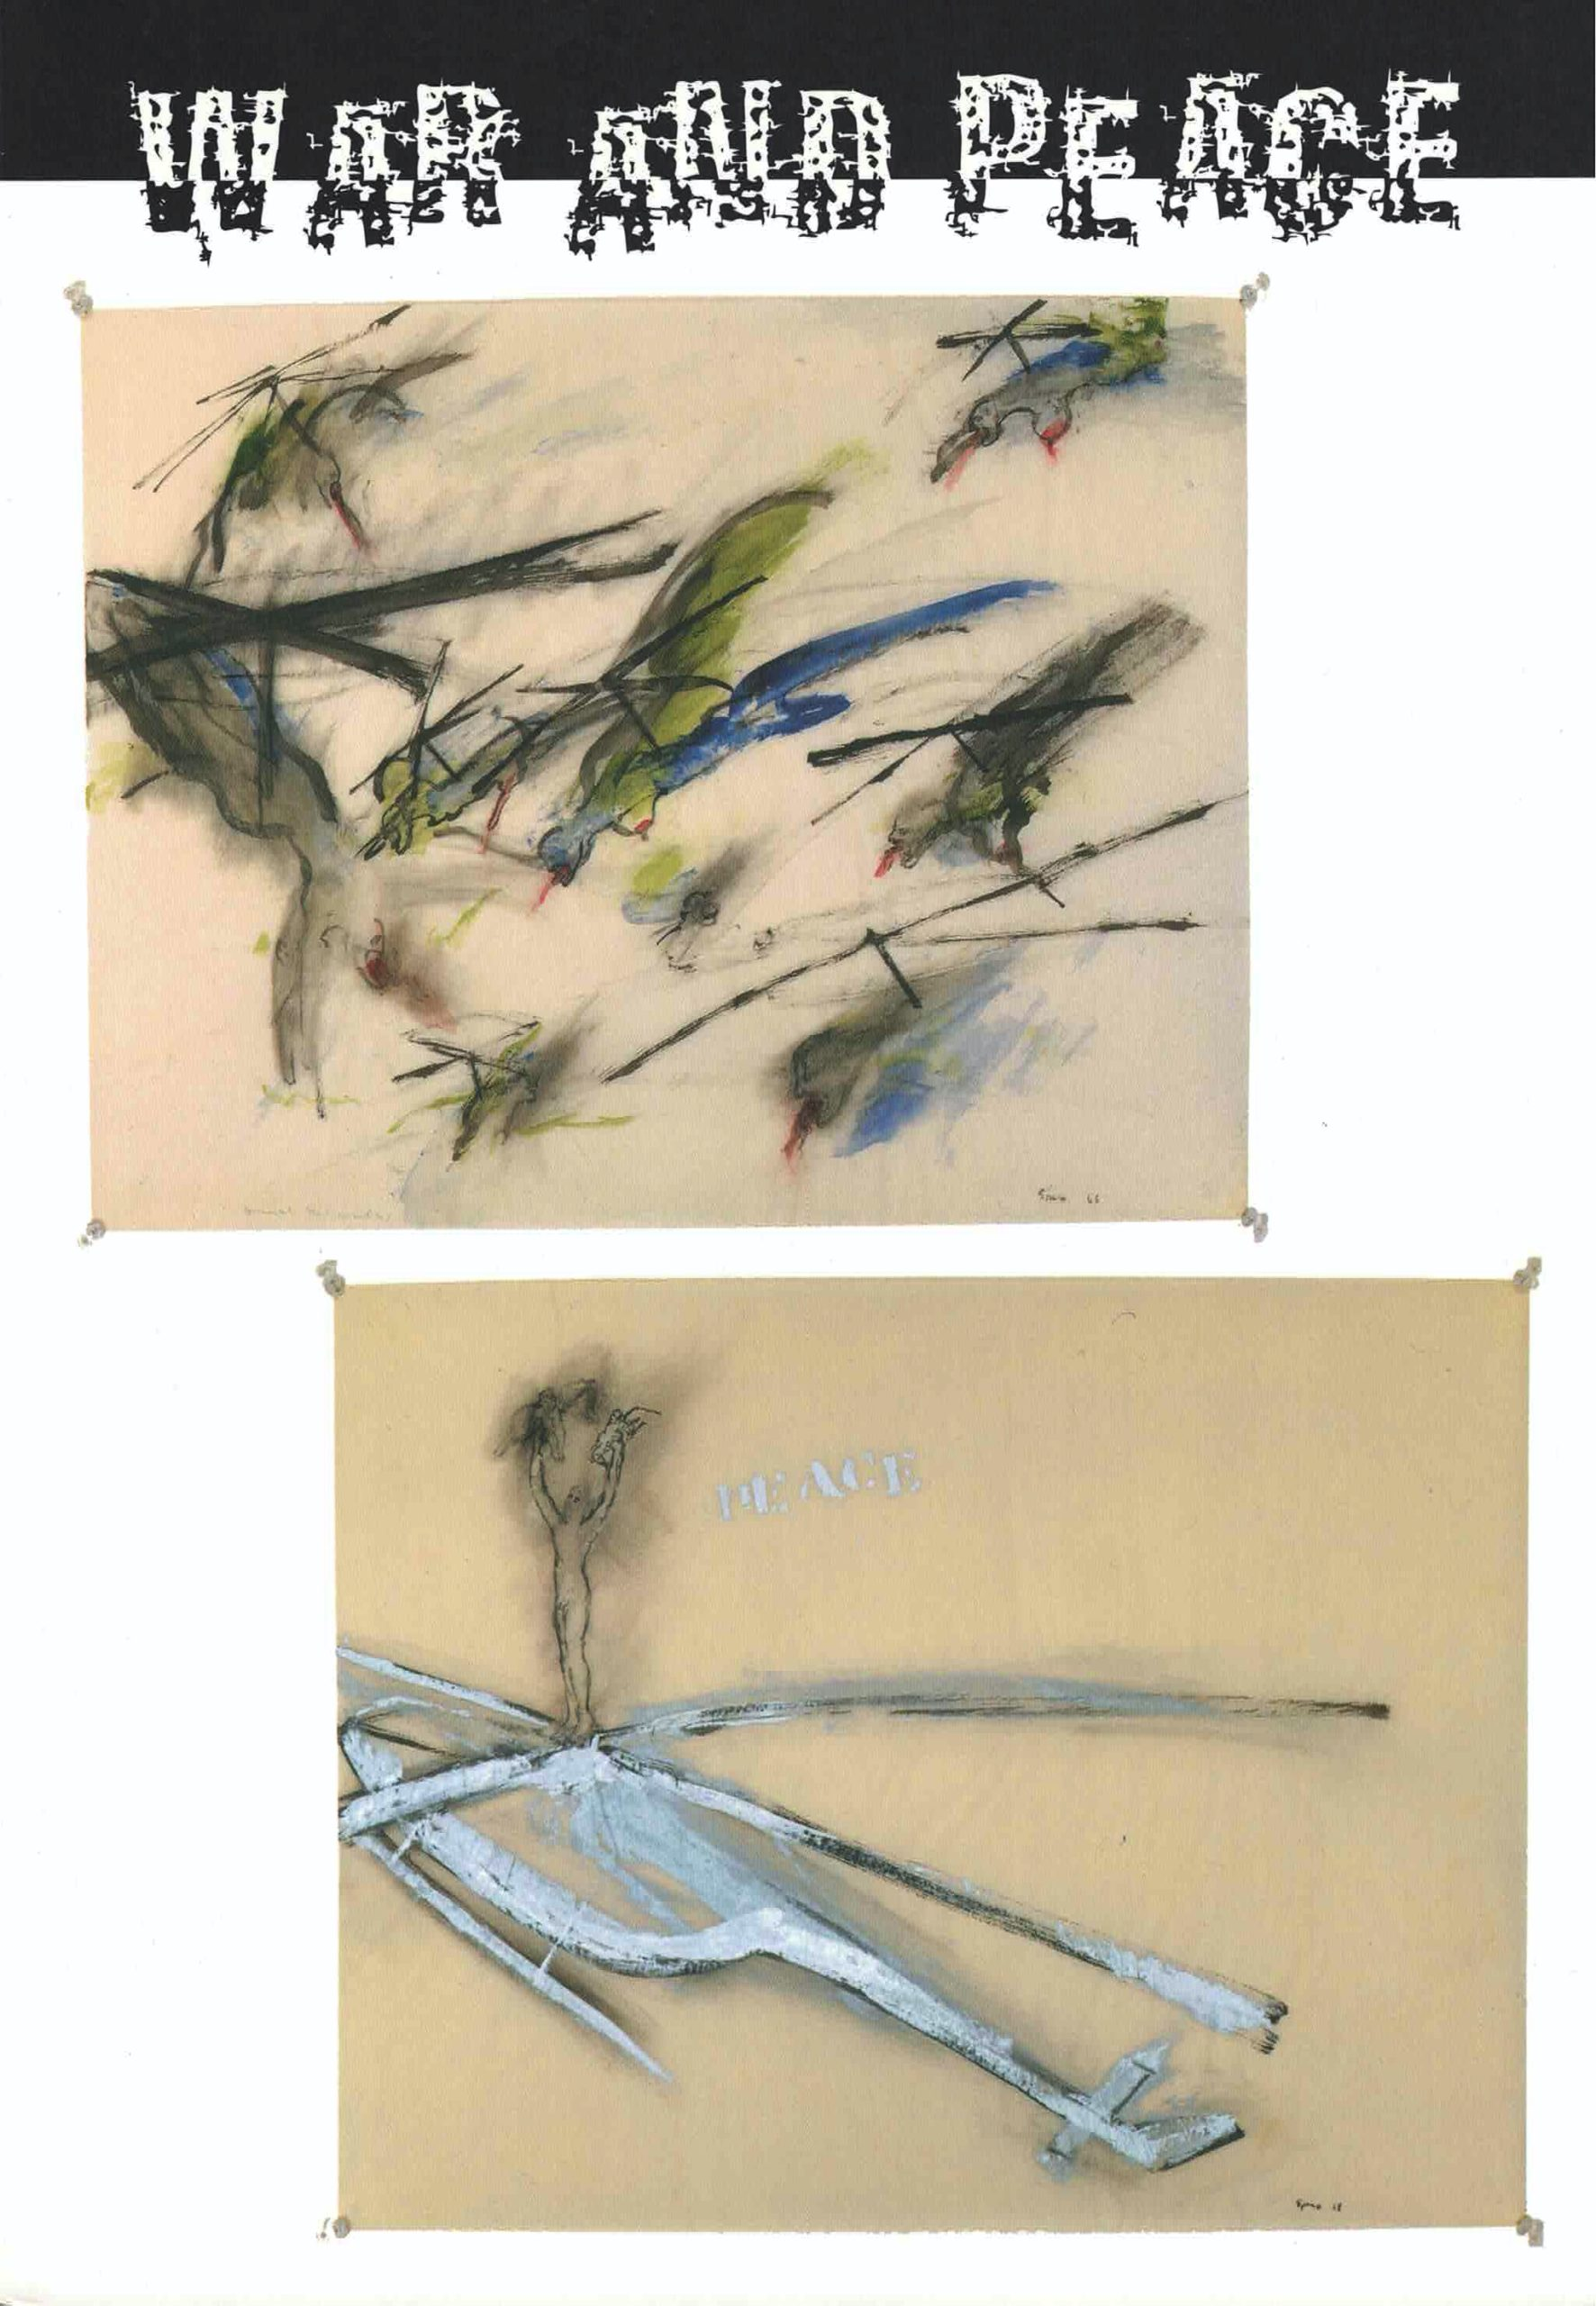 cover War and Peace 1, two pastel drawings in green, blue, white, and blacks on beige paper